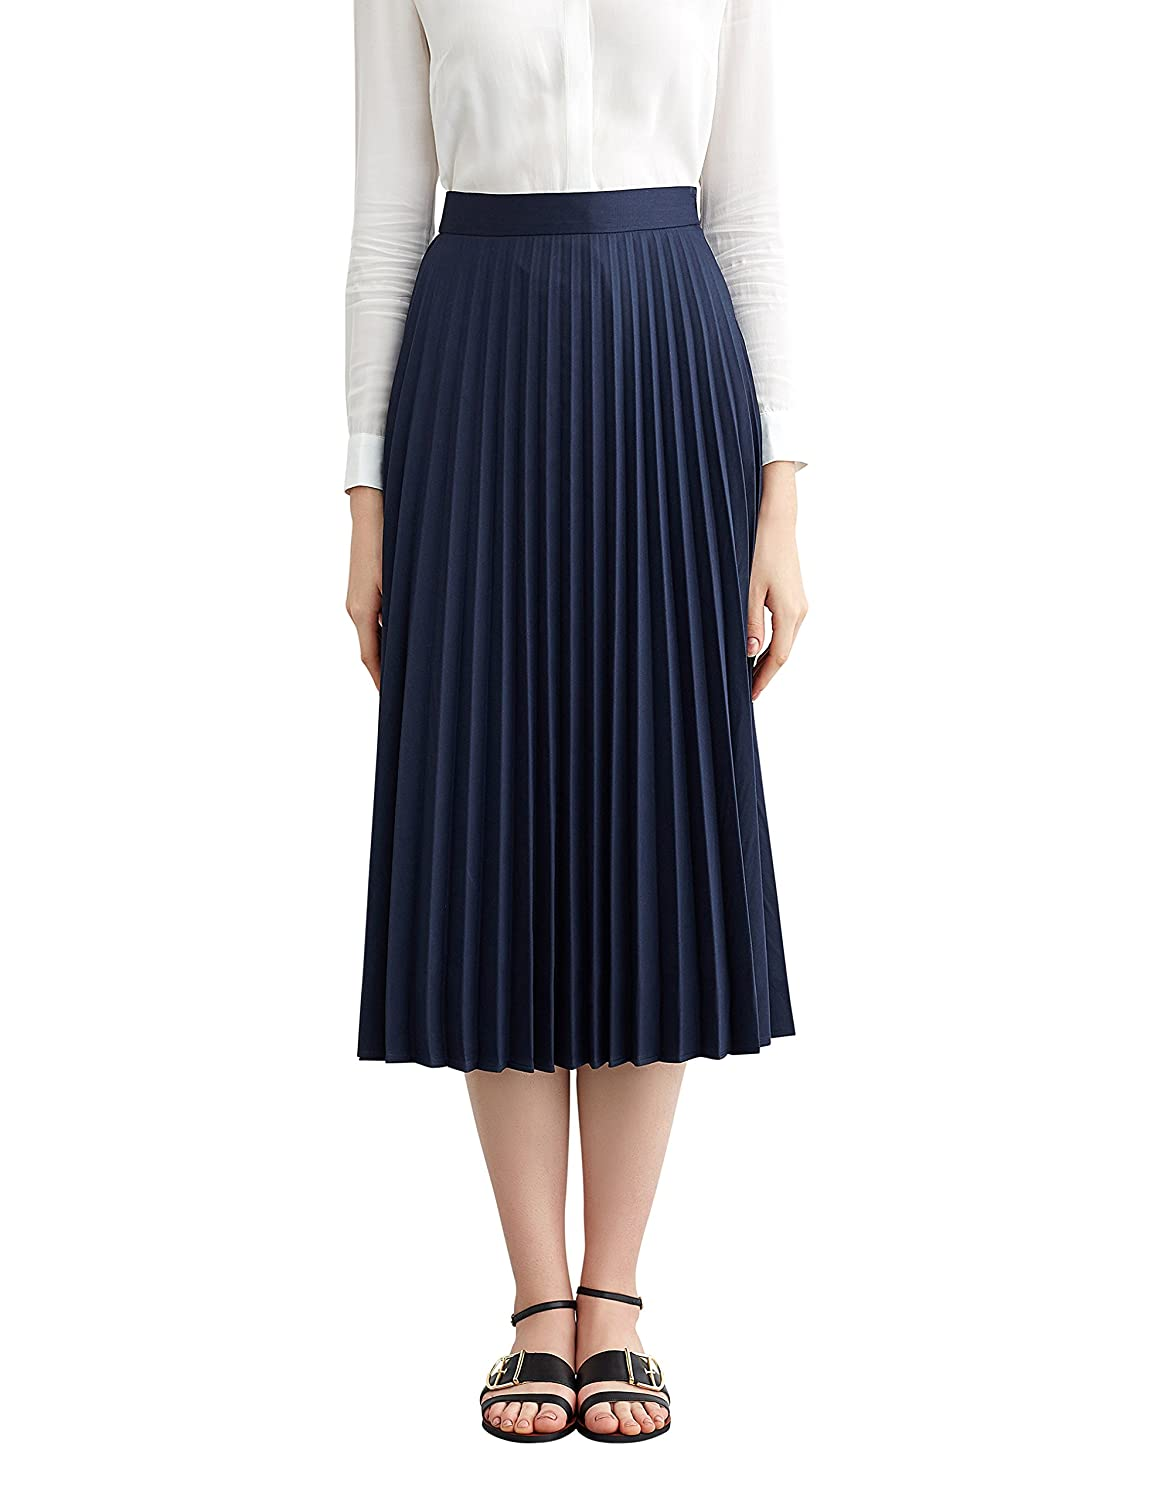 1920s Skirt History Simple Retro Womens High Waist Basic Pleated A-line Midi Skirt  AT vintagedancer.com